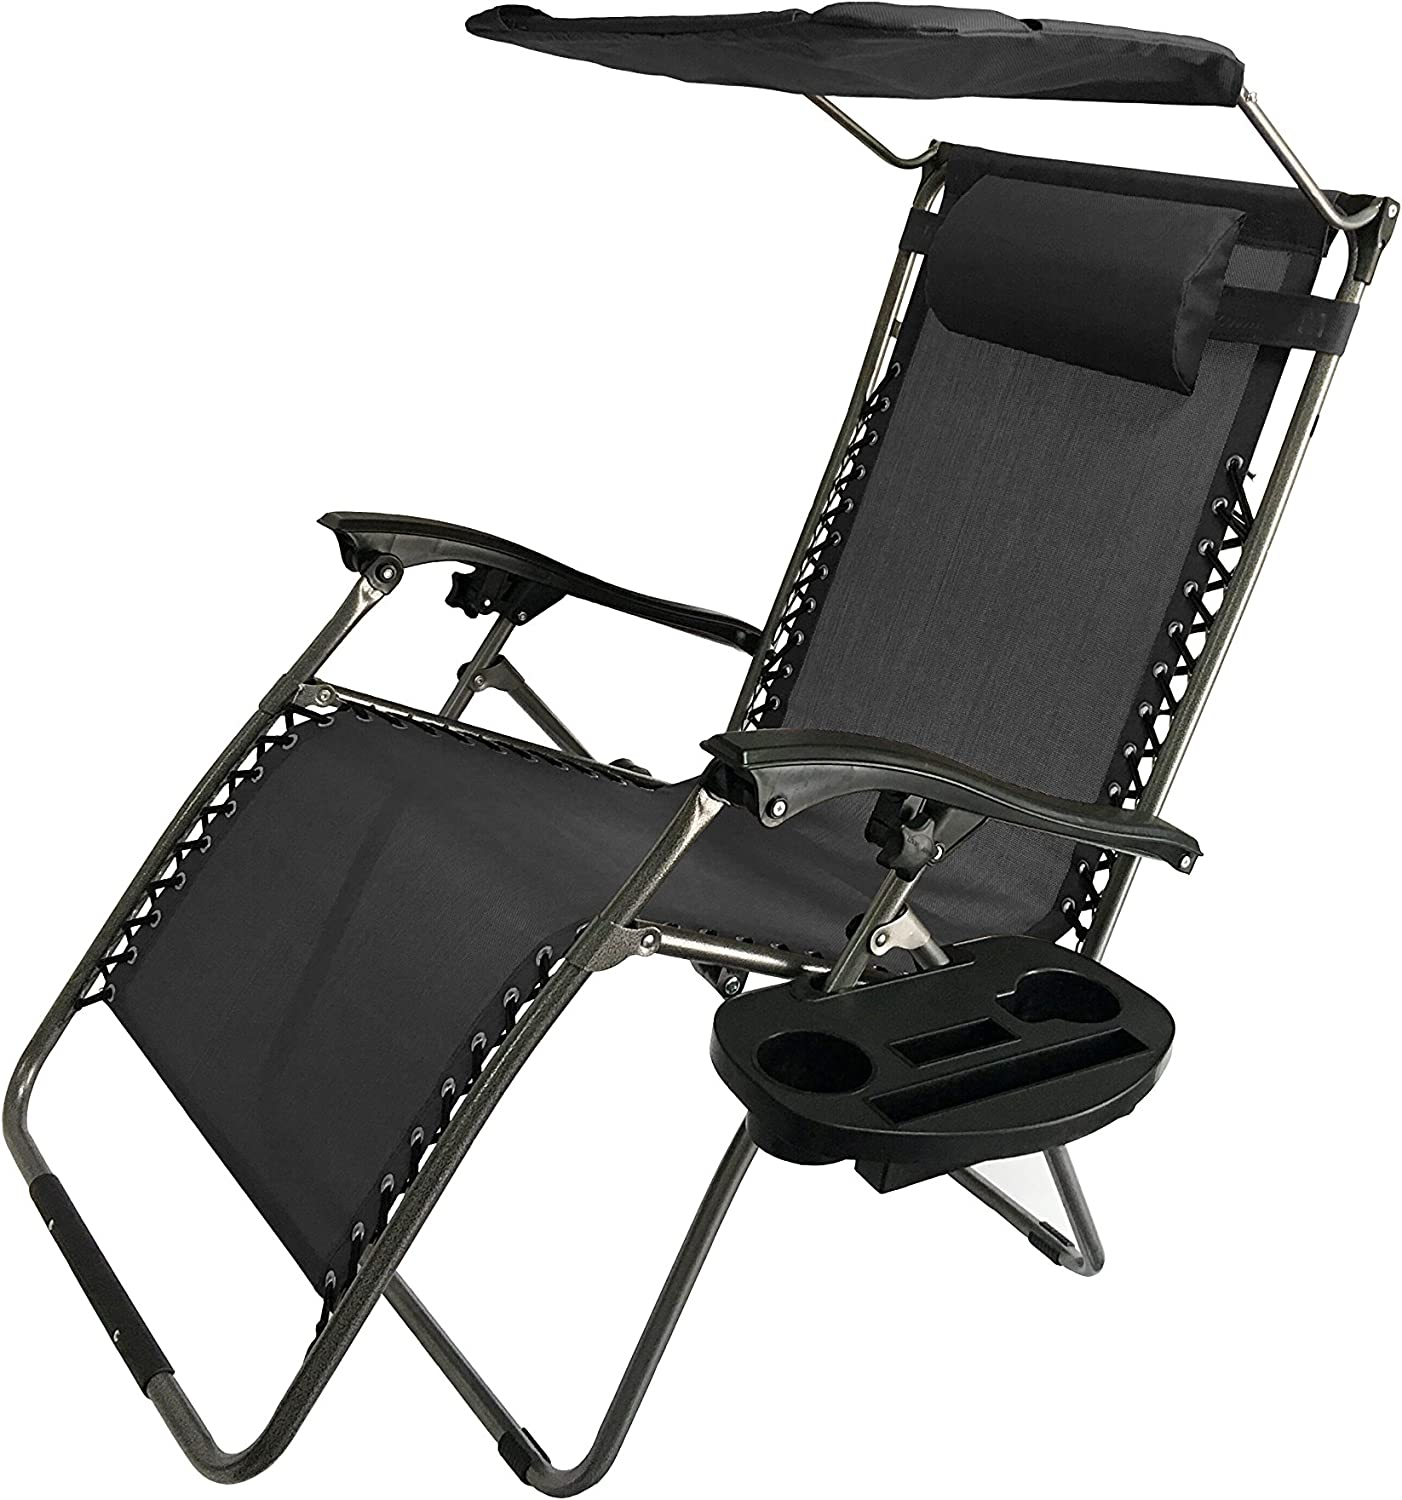 Akari Decor Zero Gravity Chair Reviews